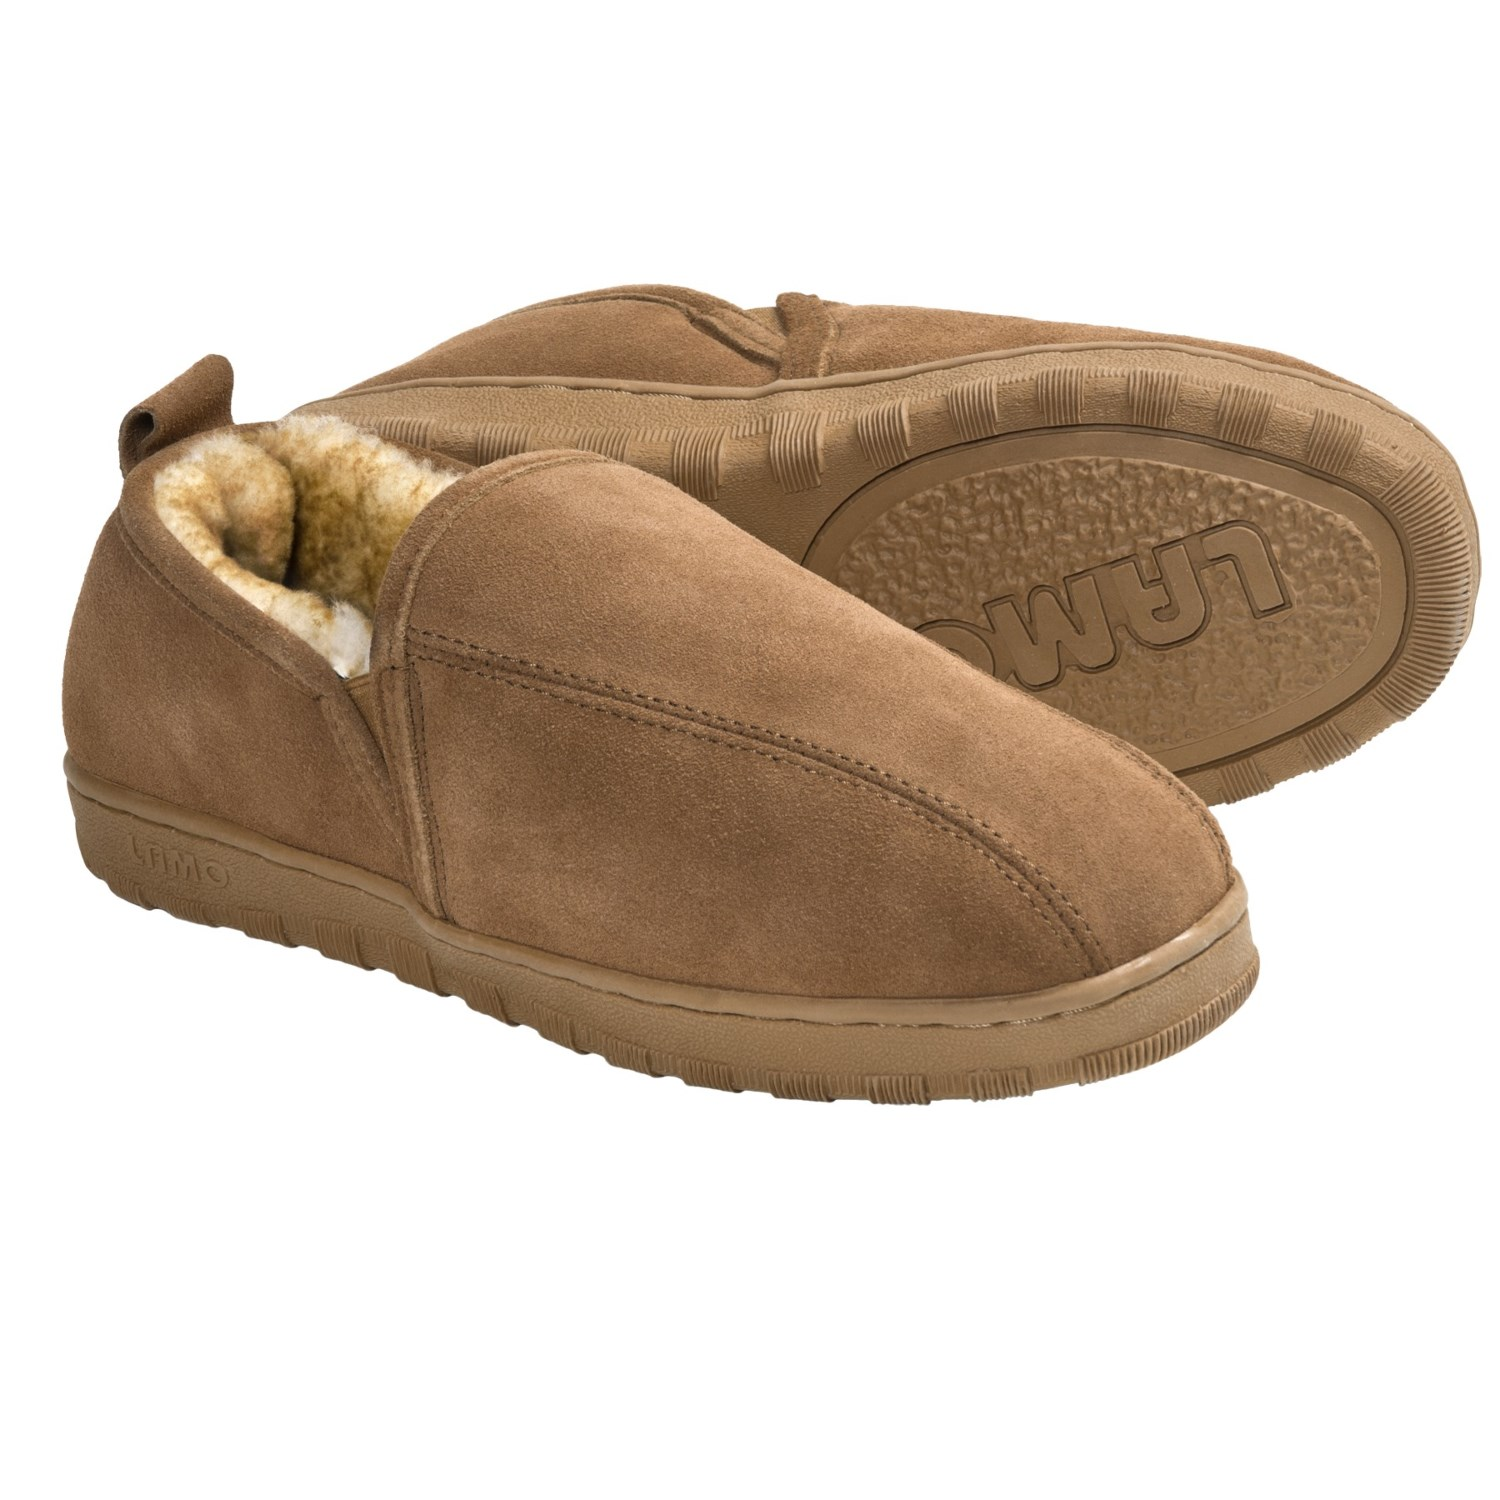 Mens slippers with outdoor soles homewood mountain ski resort